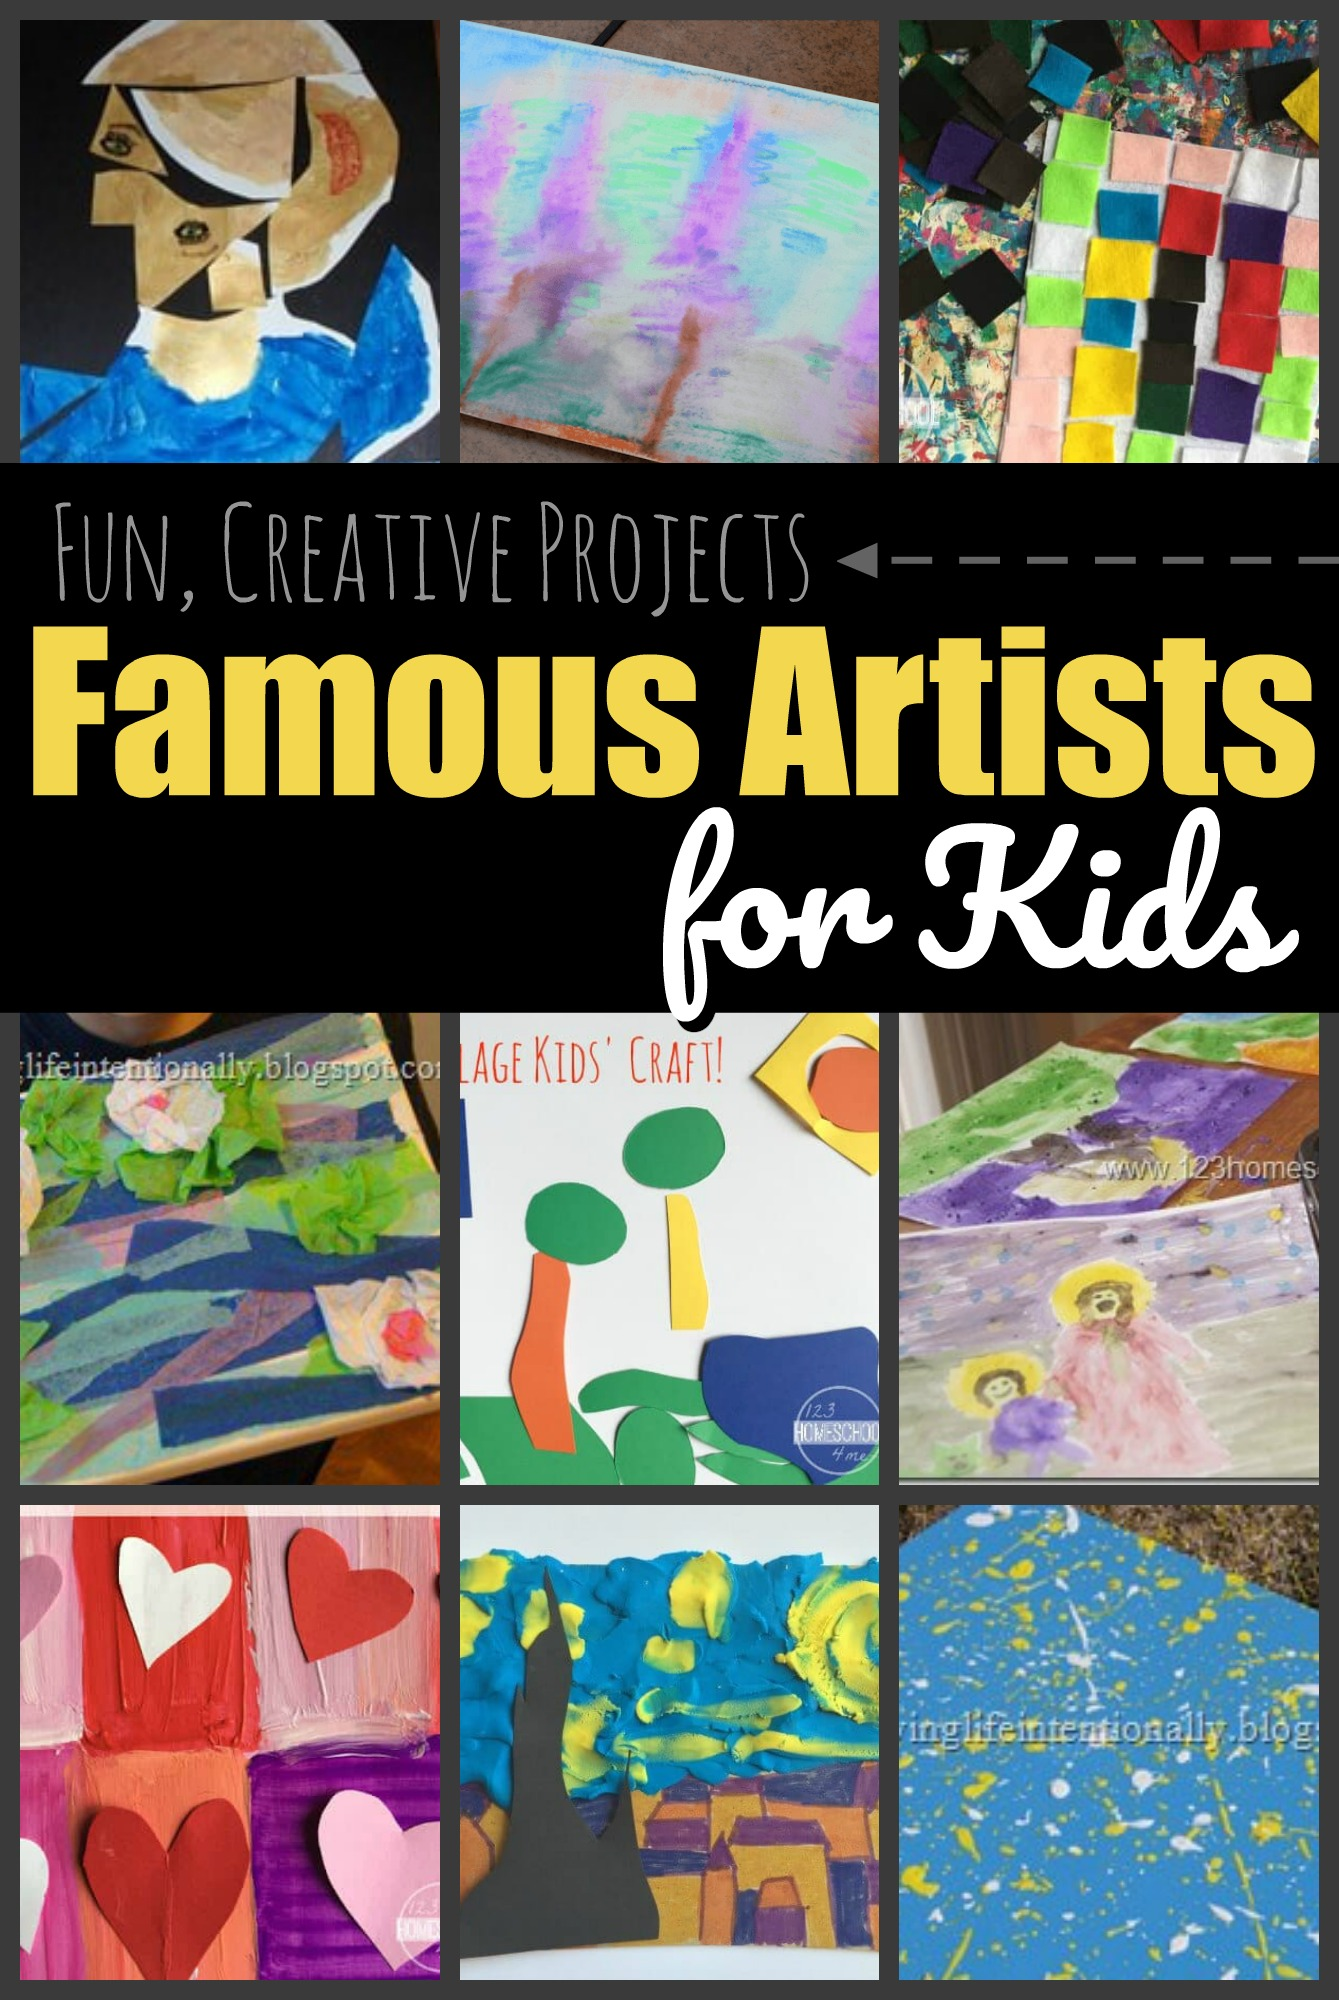 Famous Artists for Kids - lots of fun projects and crafts for kids to explore projects like van gogh, oney, matisse, polluck, etc. Plus we have a free famous artist report form; the tempalte works with any artist. #famousartists #artprojects #artforkids